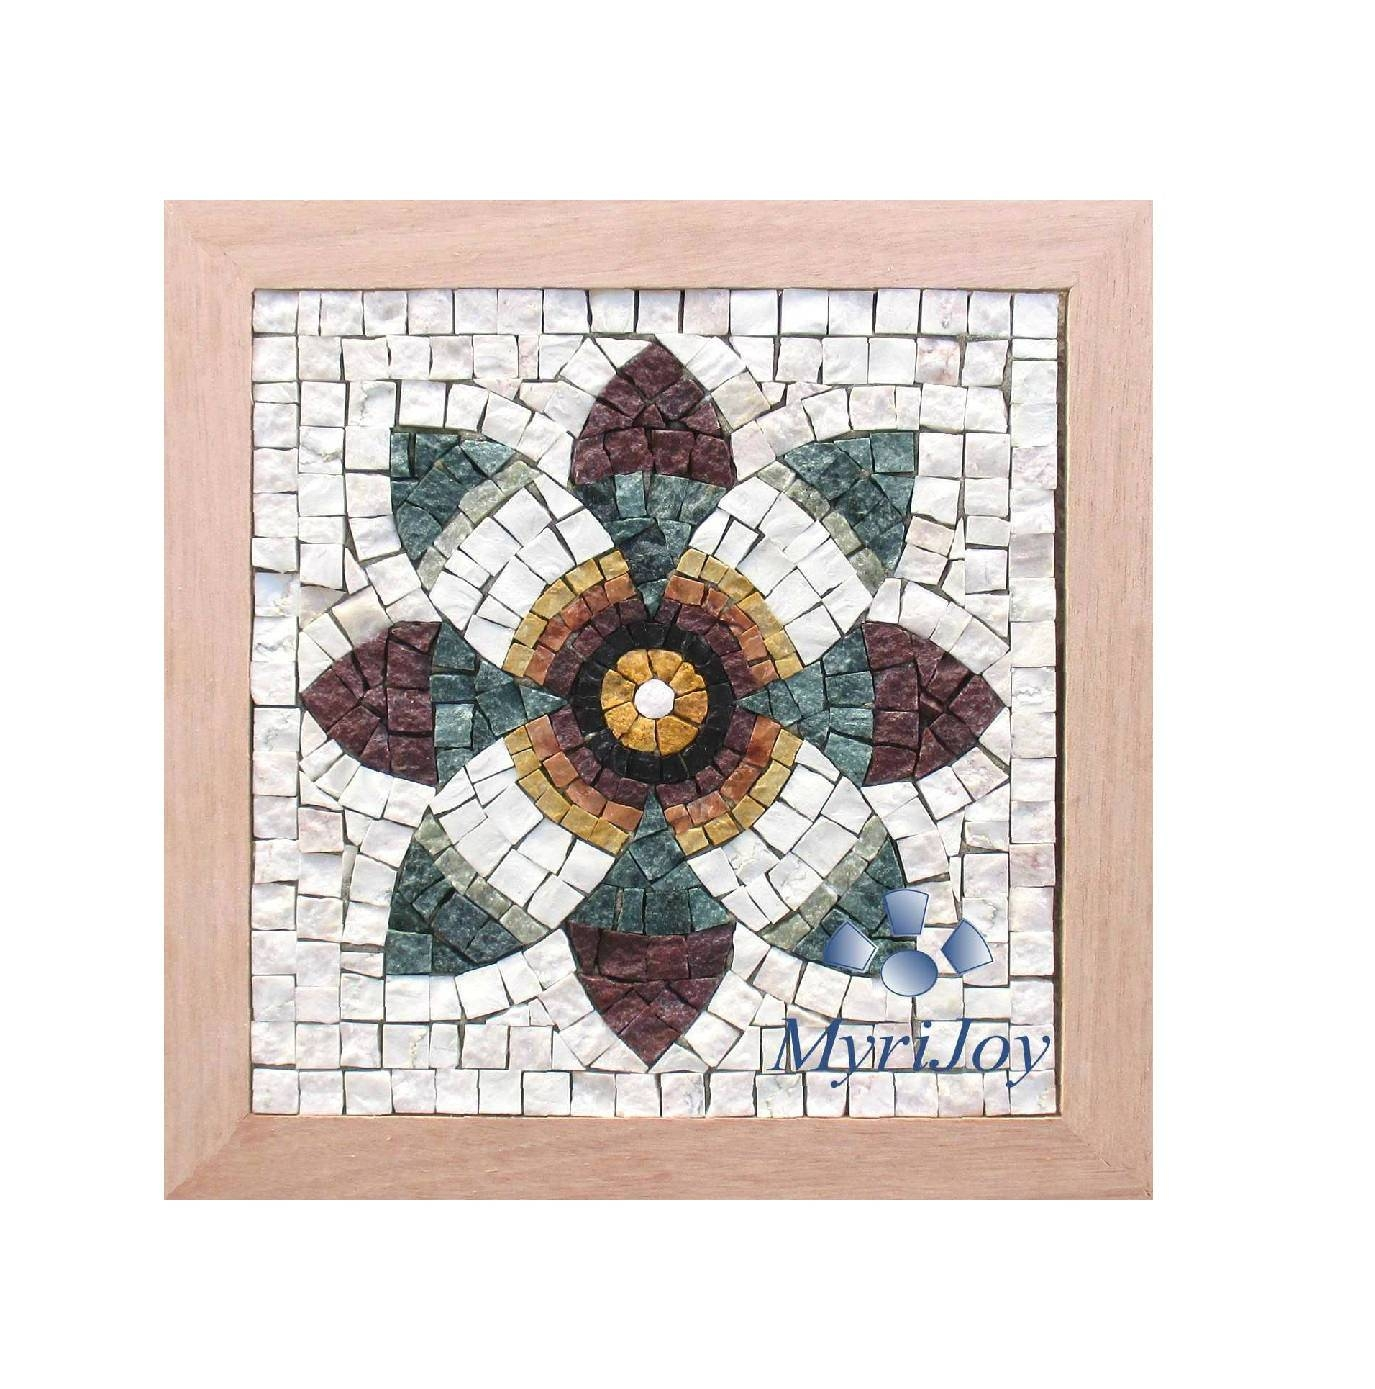 Diy Roman Mosaics Kit For Adults Pomegranate Flower Marble Mosaic Intended For Most Recent Mosaic Art Kits For Adults (View 8 of 20)